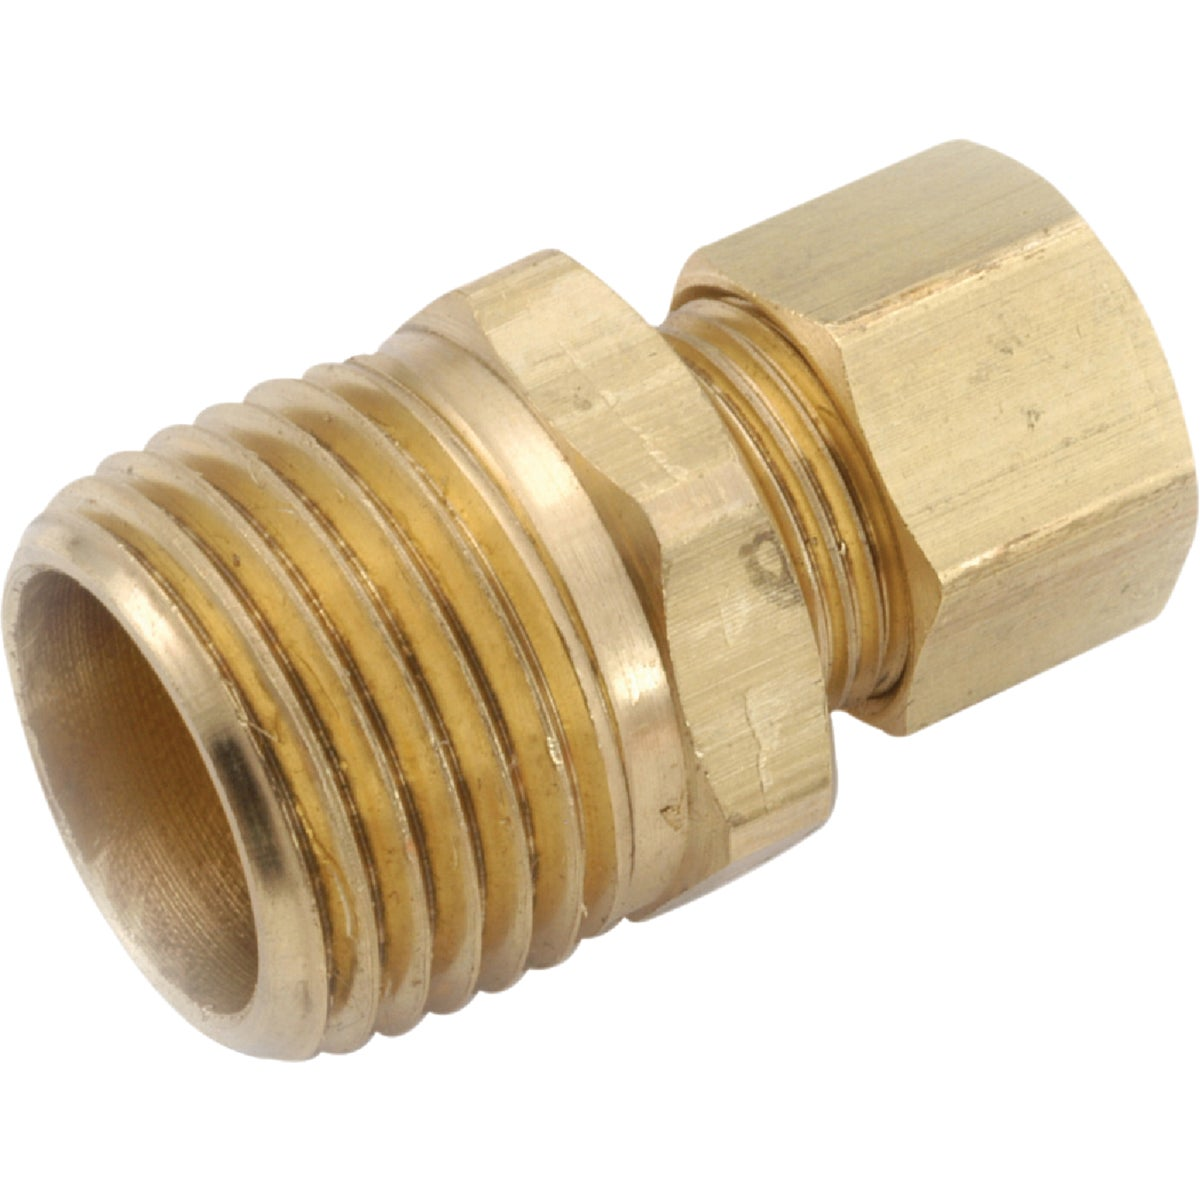 1/4X3/8 MALE CONNECTOR